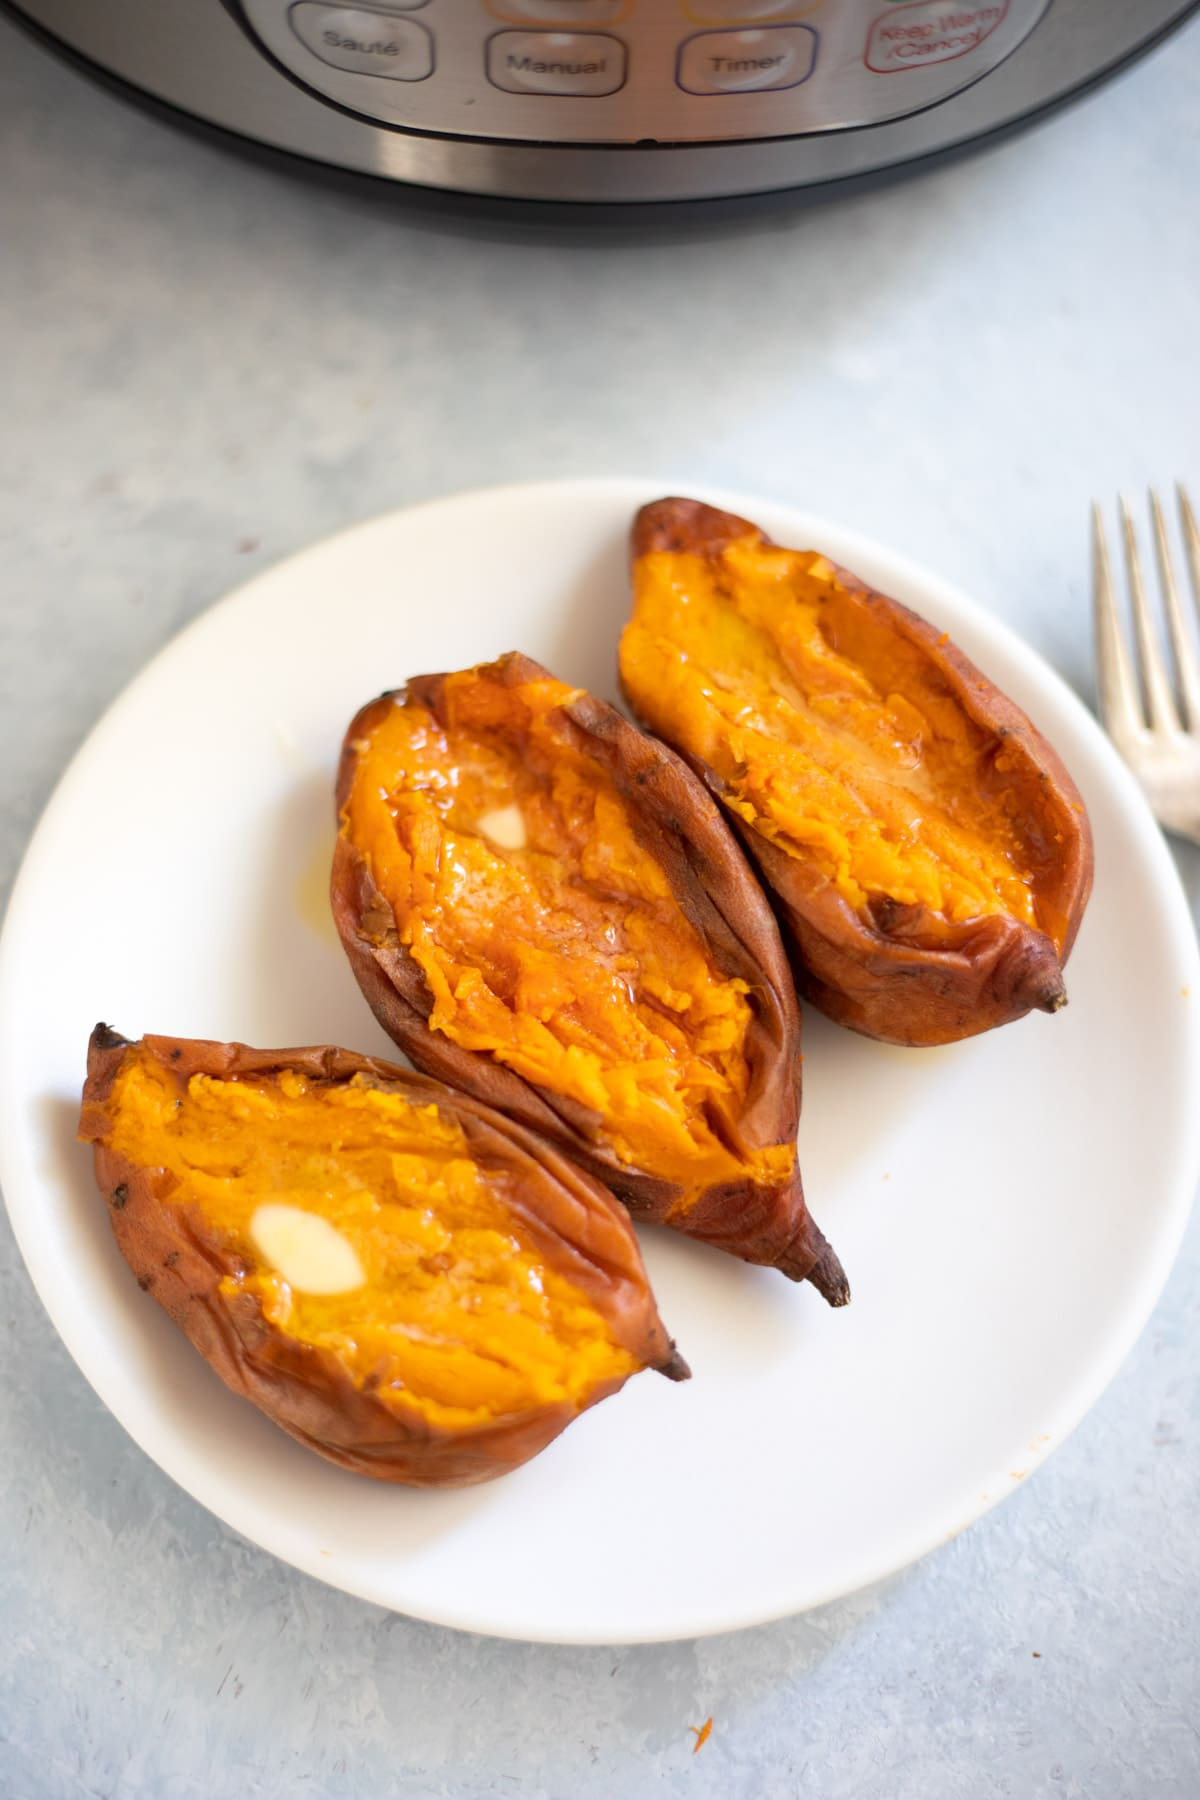 Three Creamy buttery Sweet potatoes in a plate in front of the instant pot